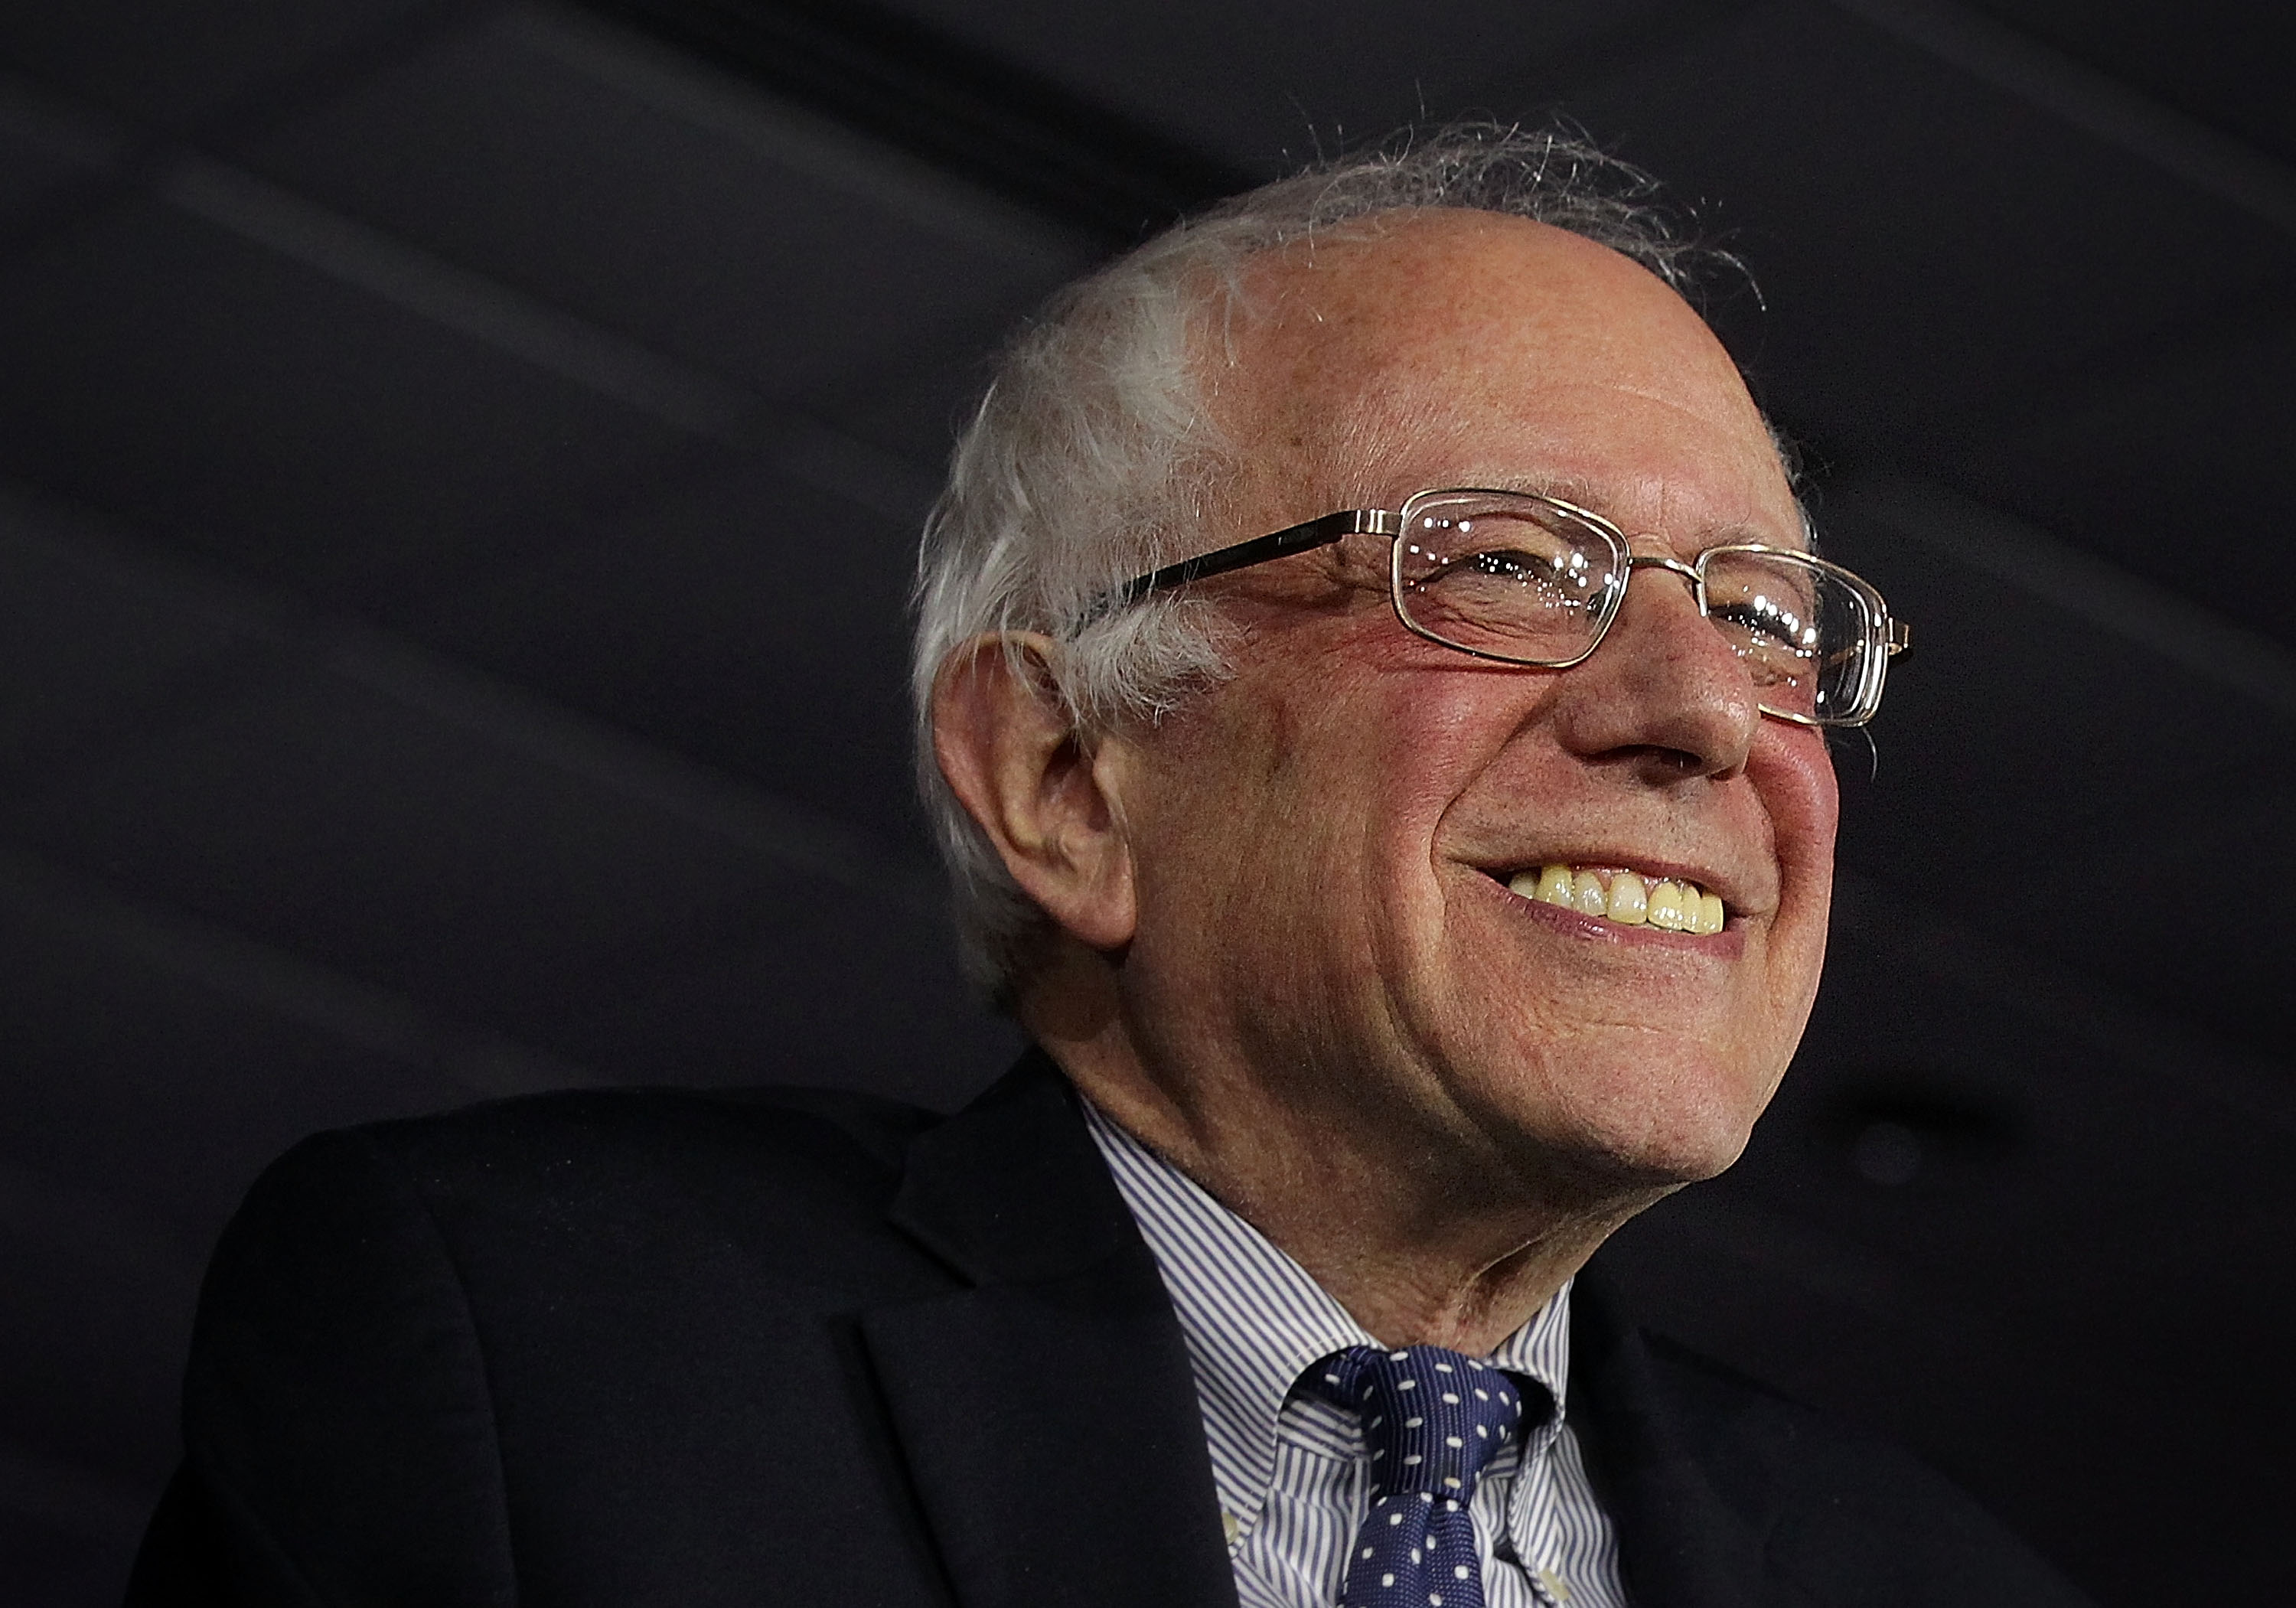 Democratic presidential candidate Sen. Bernie Sanders (I-VT) smiles as he speaks to supporters during a caucus night party in Des Moines, Iowa.